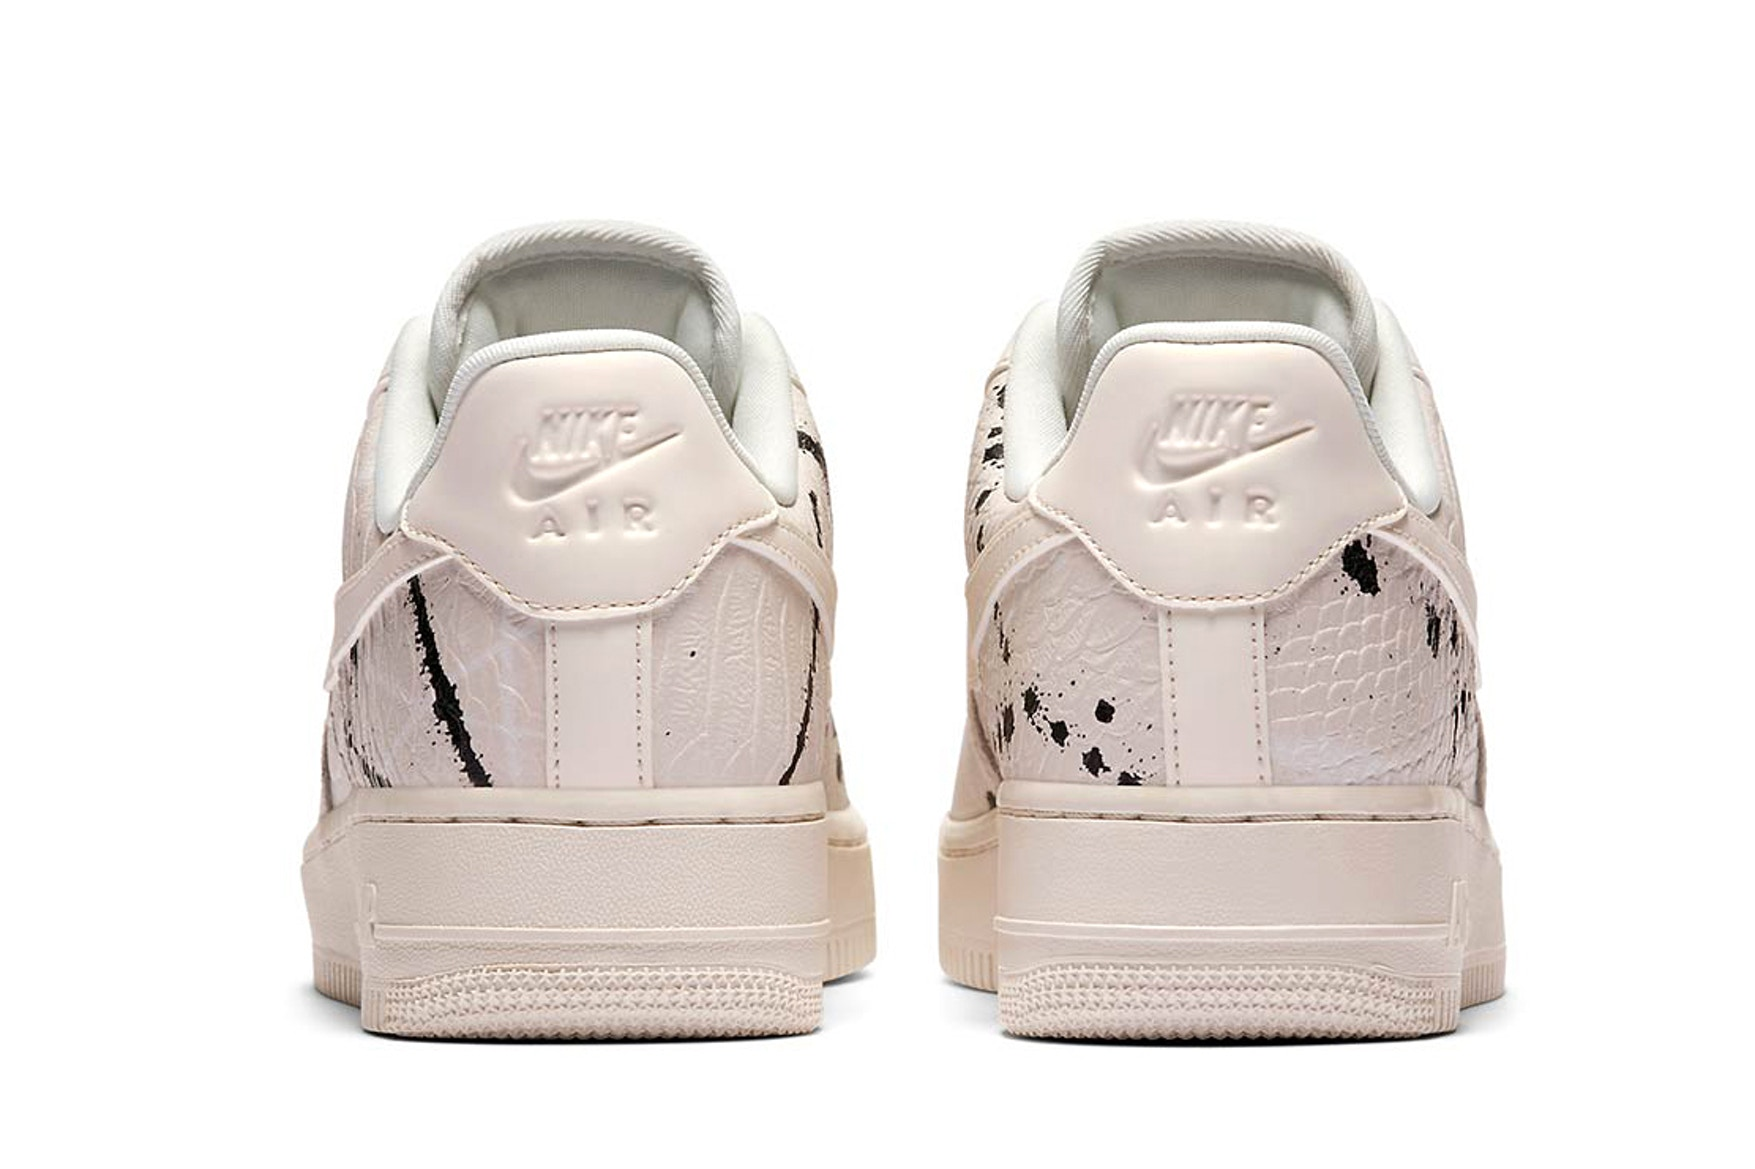 nike-air-force-1-low-phantom-snakeskin-release-05